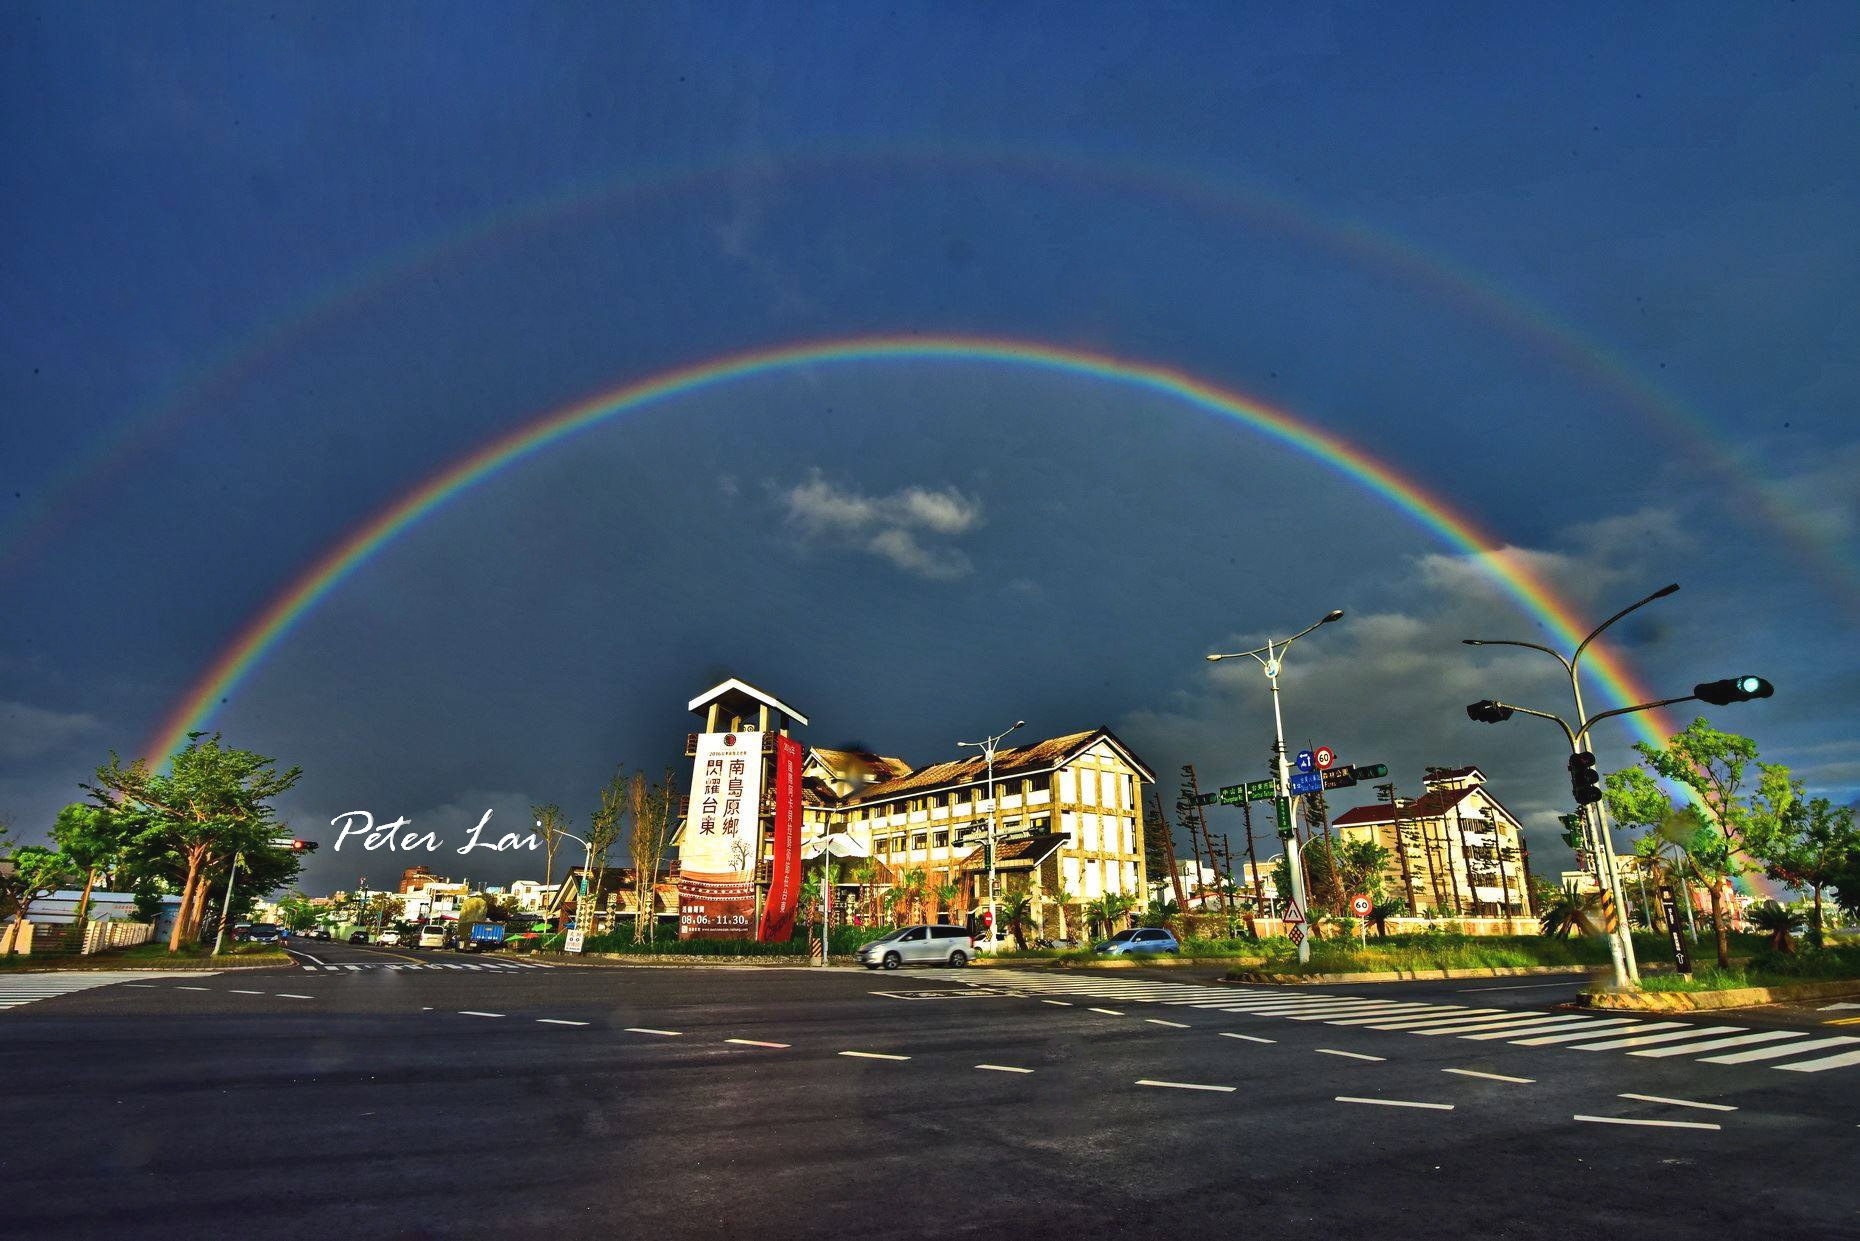 Double rainbow. by petertyghbn